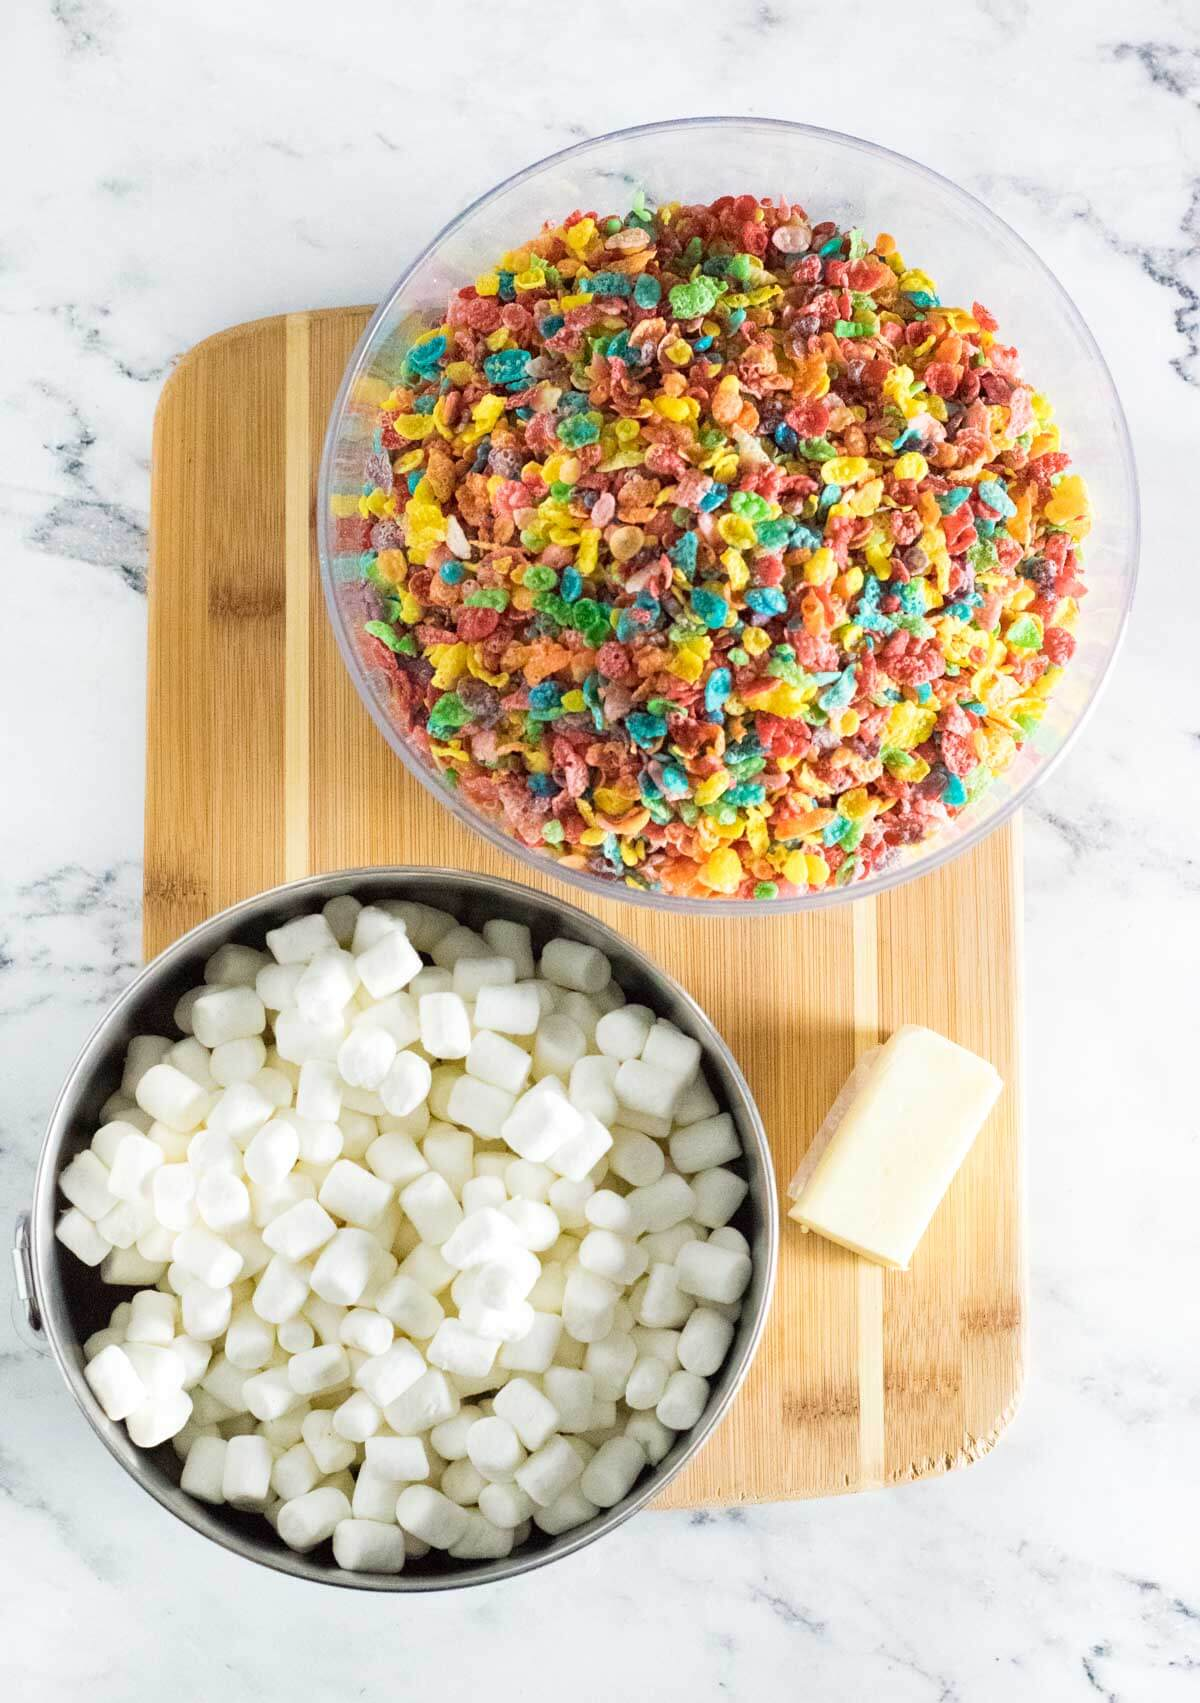 View of ingredients needed for Fruity Pebble treats.